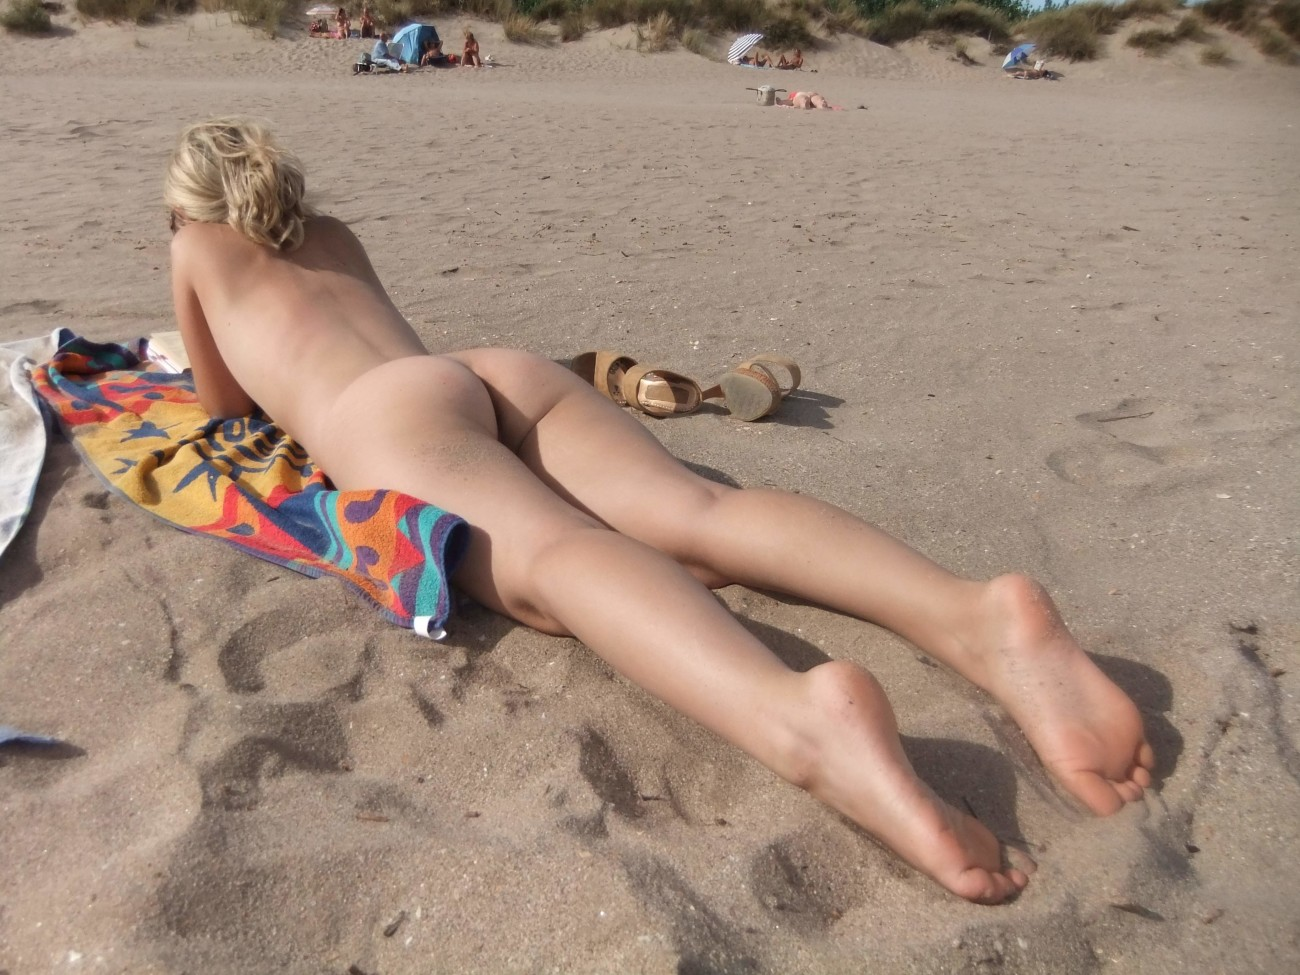 NUDISTS ARE THE Hottest PART 1..